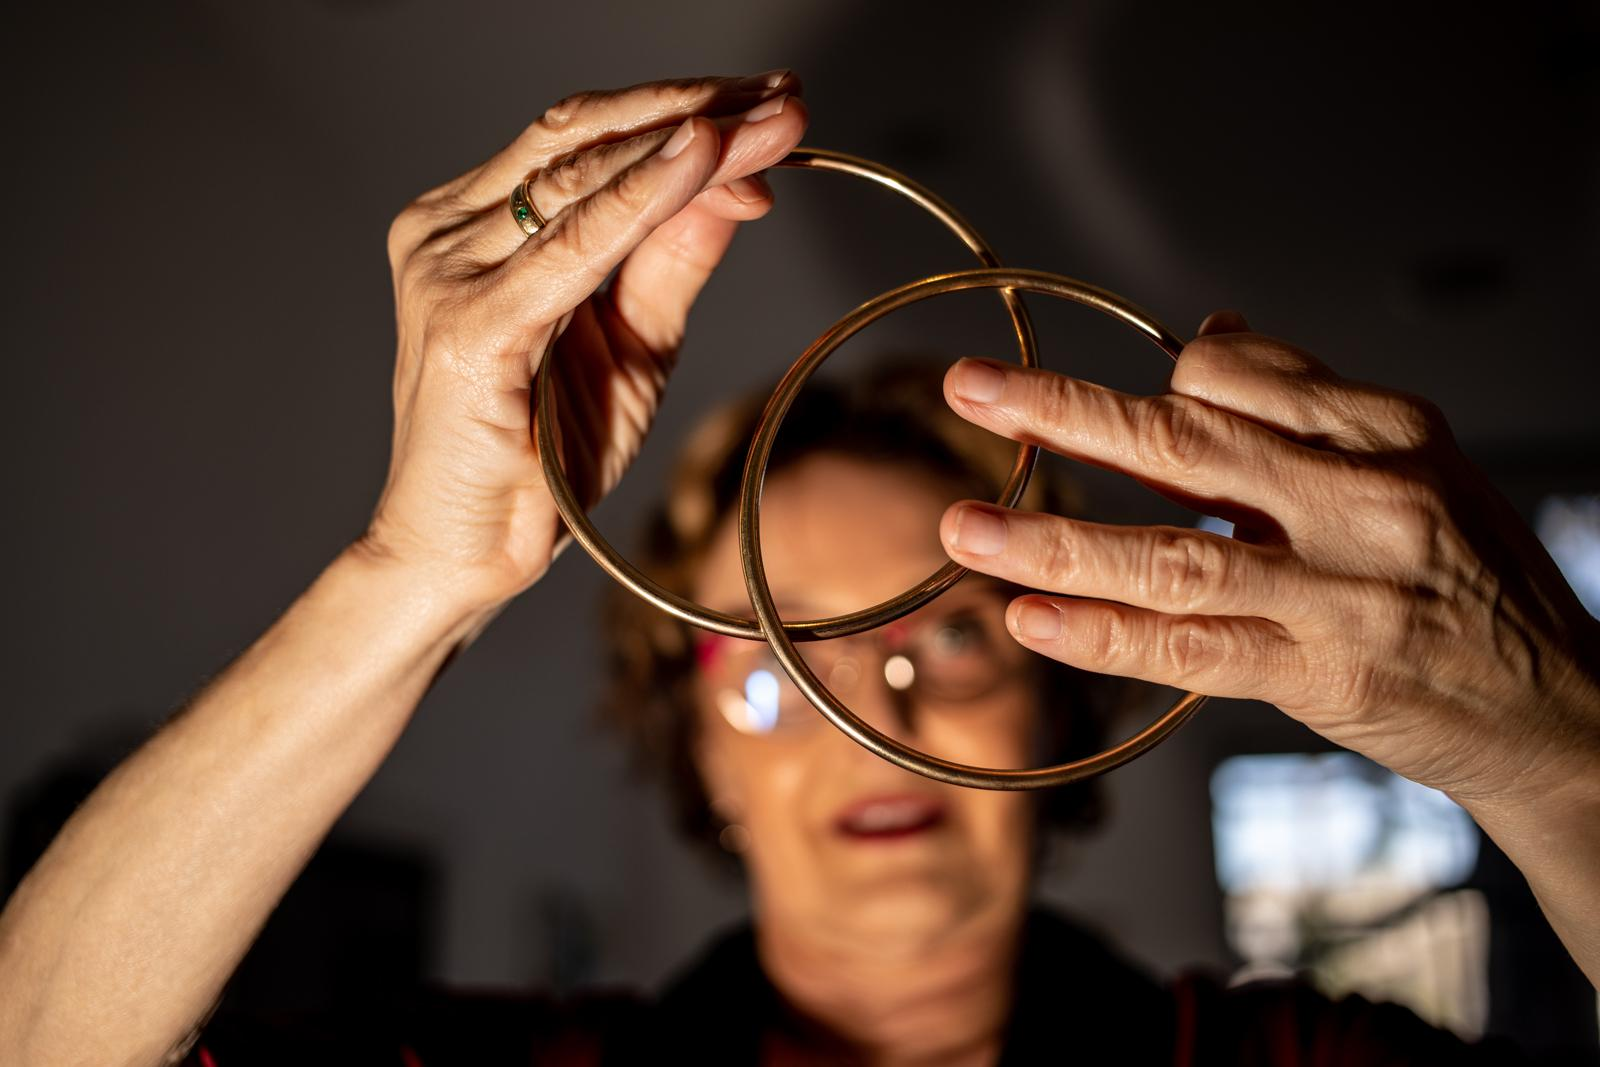 Patricia Marquis practices a trick with Chinese linking rings in her apartment in Beverly Hills.